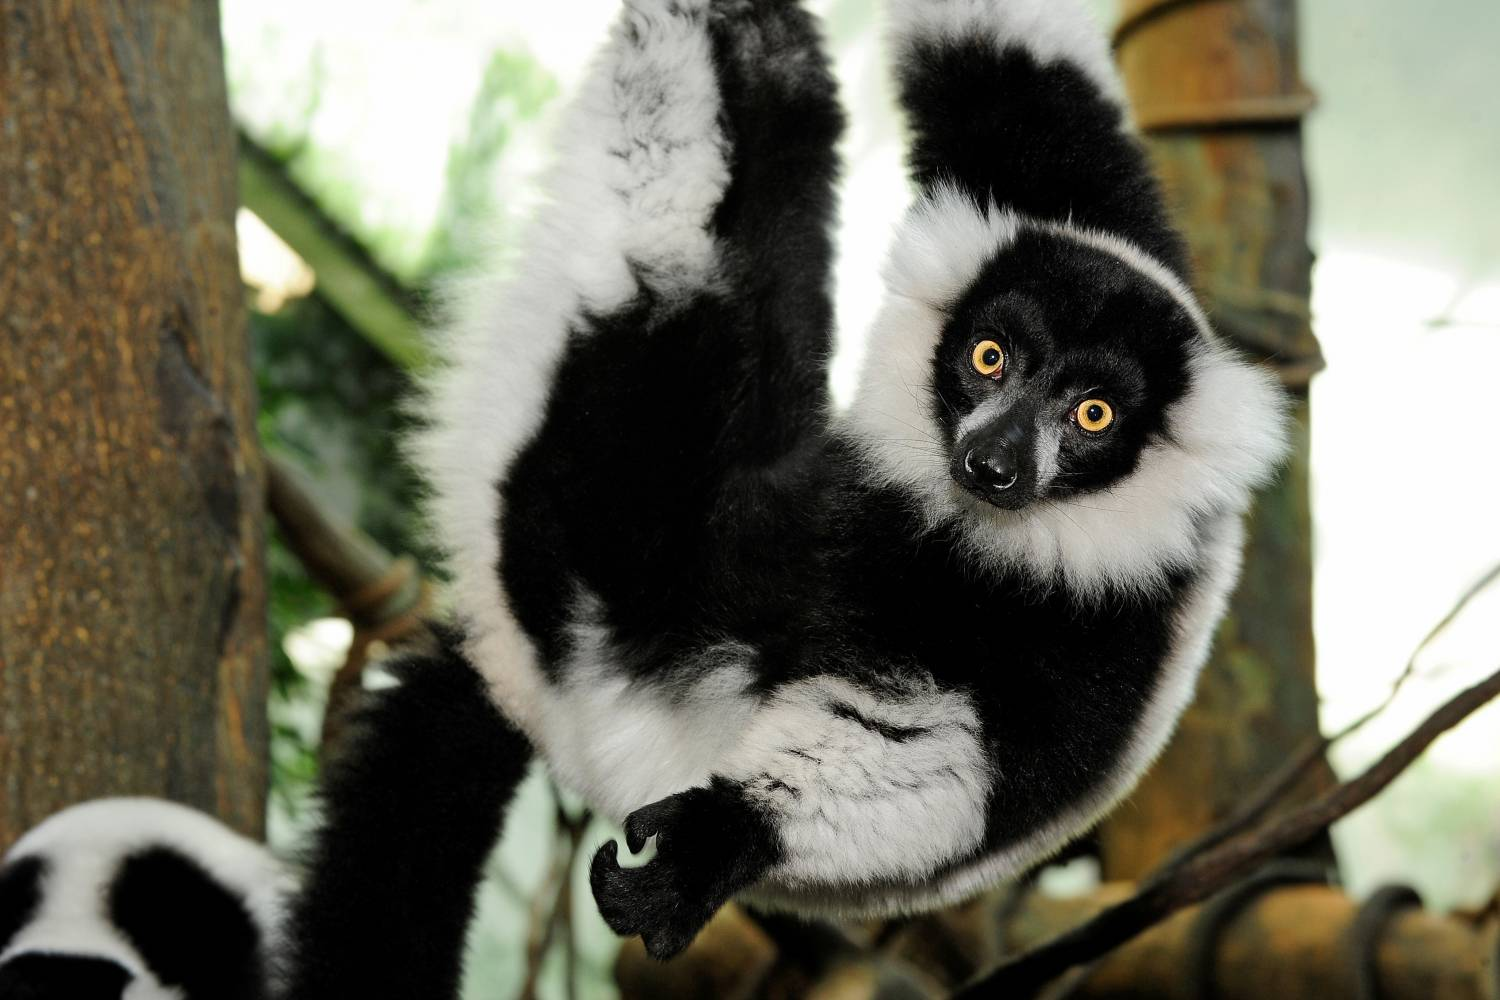 black-and-white ruffed lemur at the Central Park Zoo